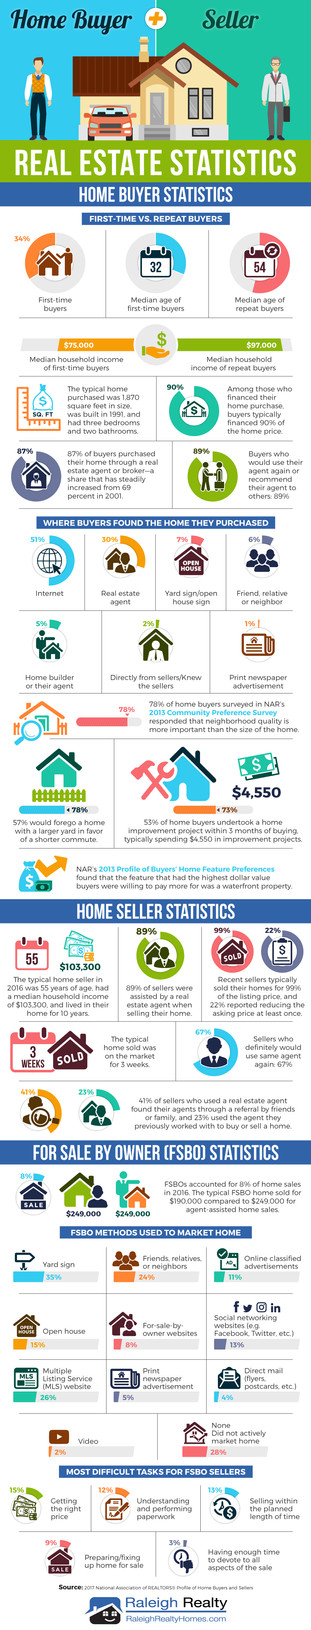 Home Buyer + Seller Real Estate Statistics